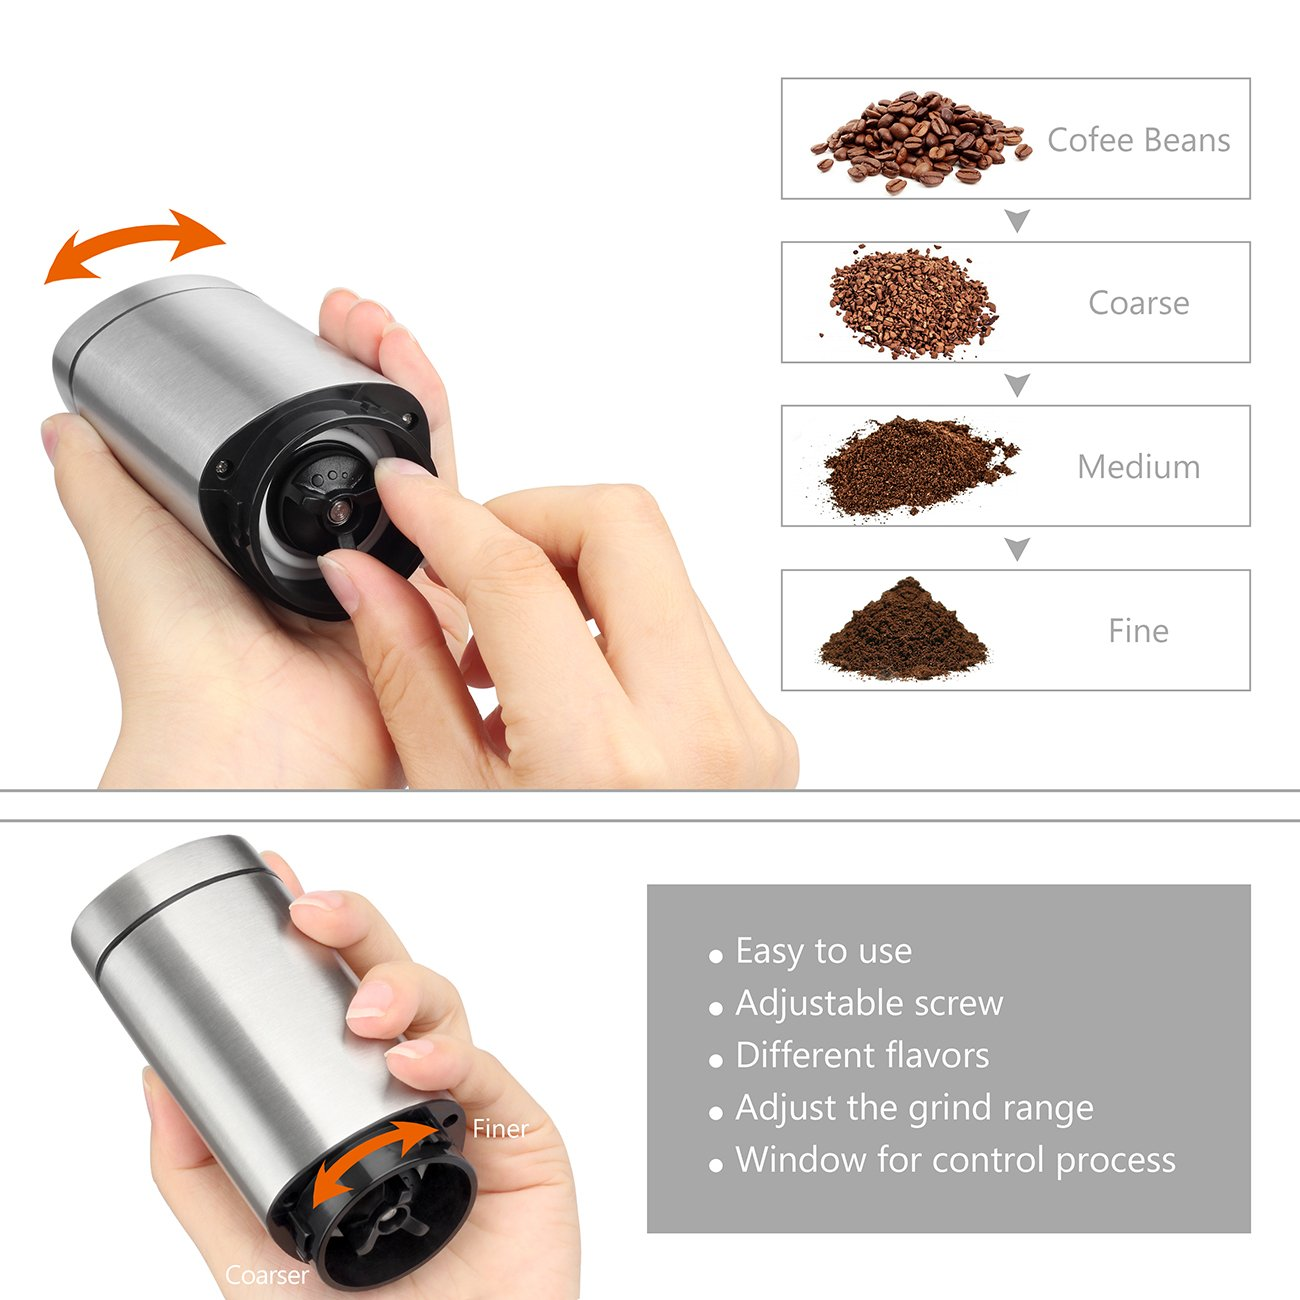 WENFENG Manual Coffee Grinder, Adjustable Ceramic Conical Burr Grinders for Precision Brewing, Stainless Steel Coffee Grinder for Home & Traveling by WENFENG (Image #3)